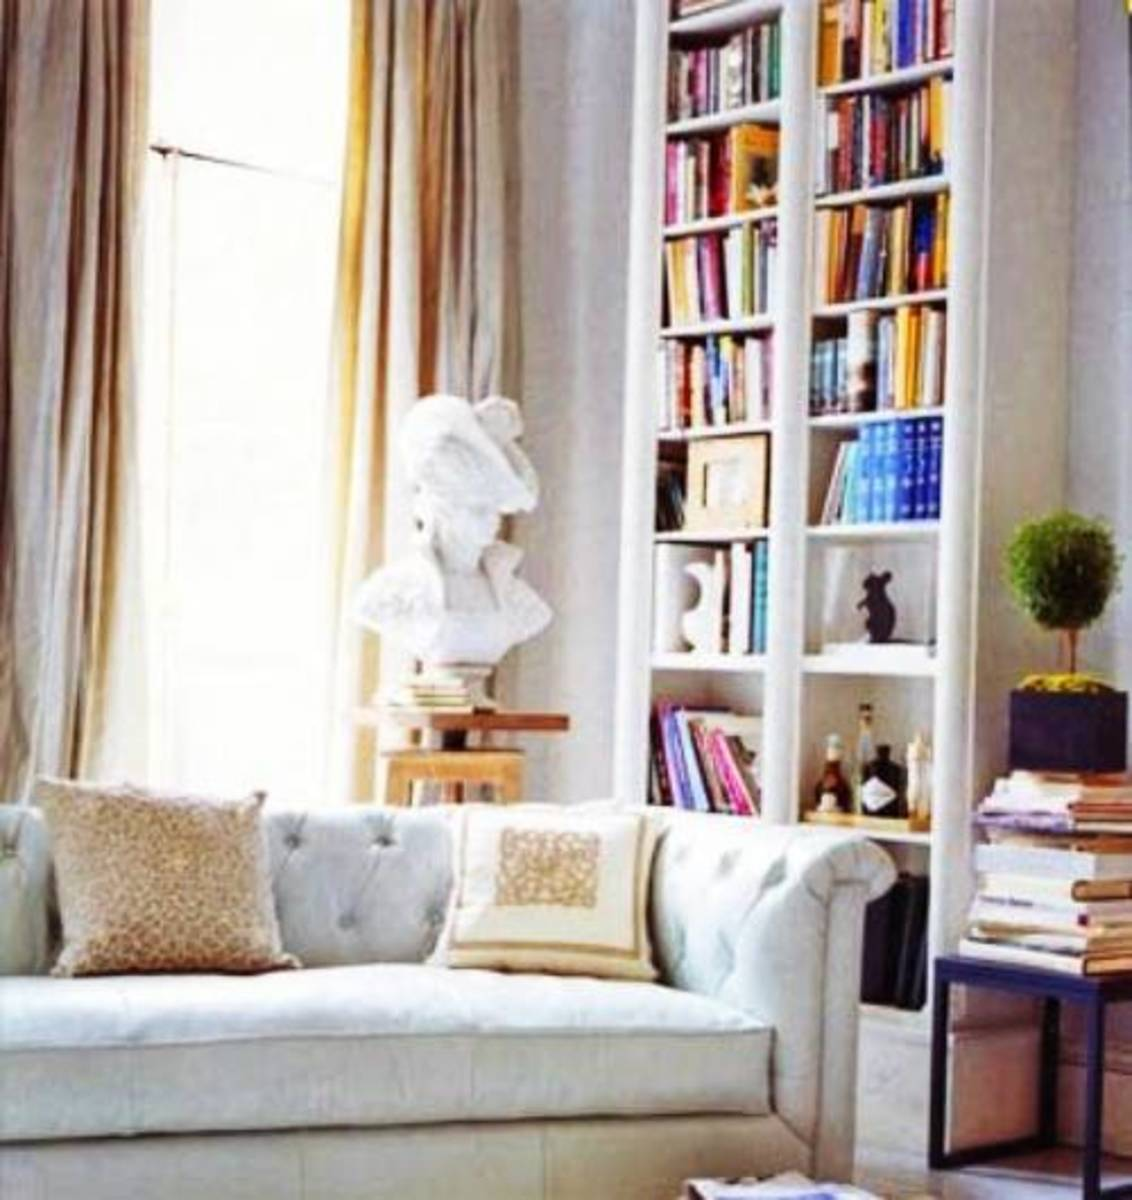 Books bring add color and interest in the space.